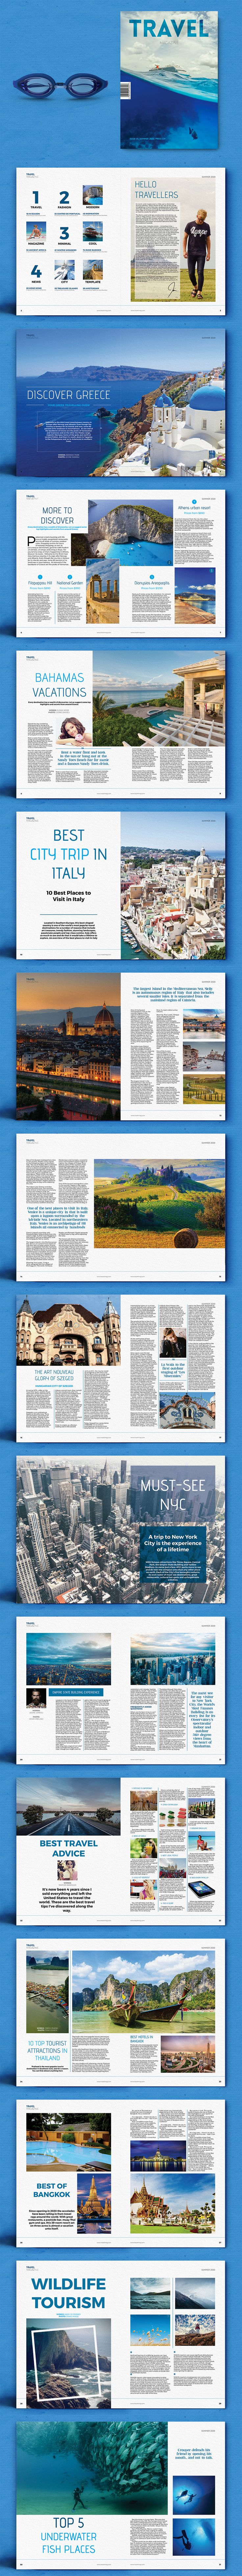 Travel Magazine 32 Pages Template InDesign INDD